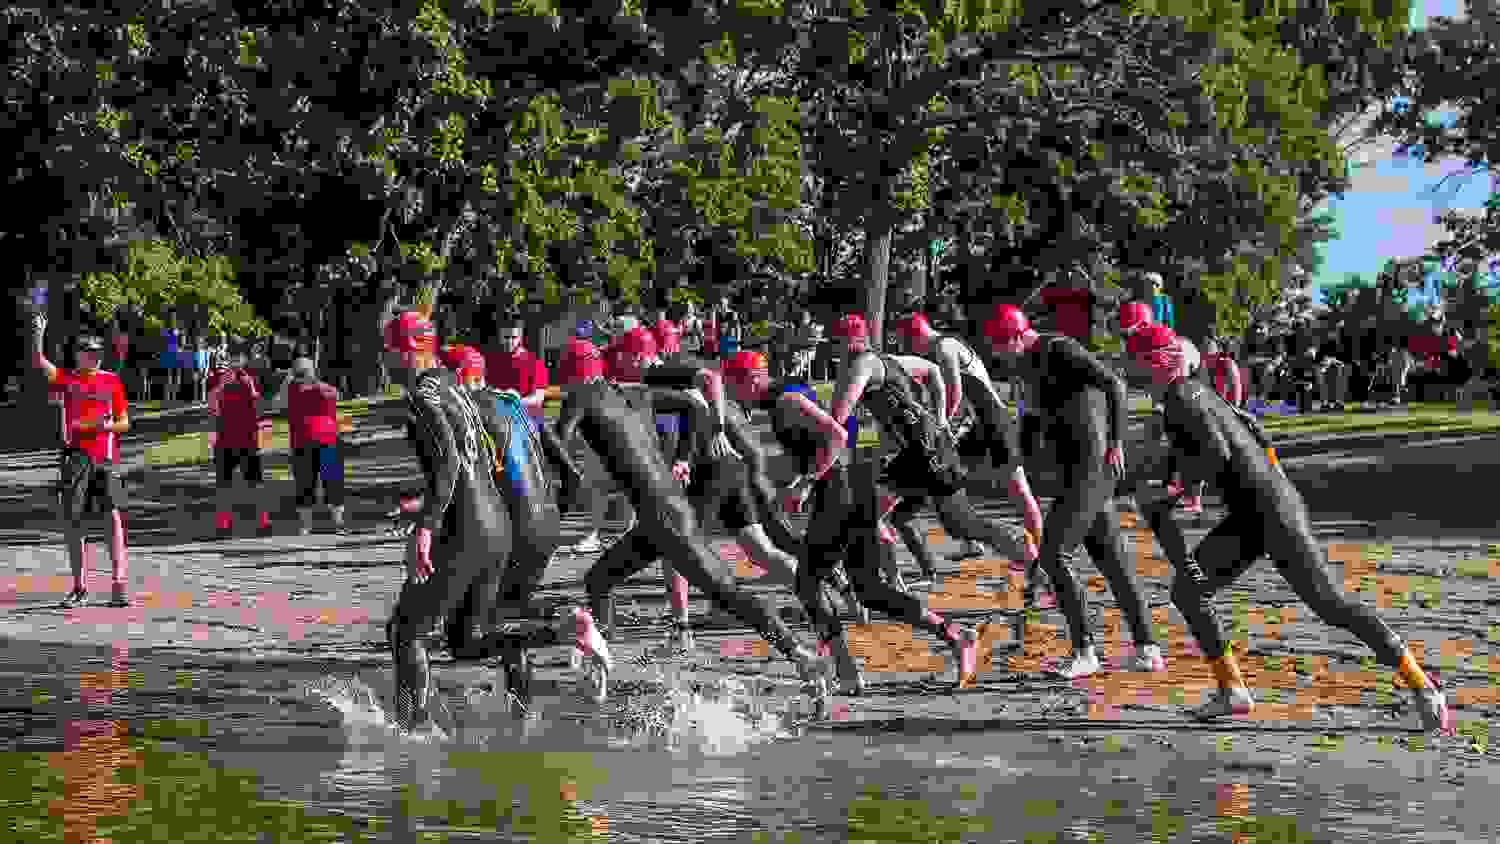 triathlon swimmers entering the water